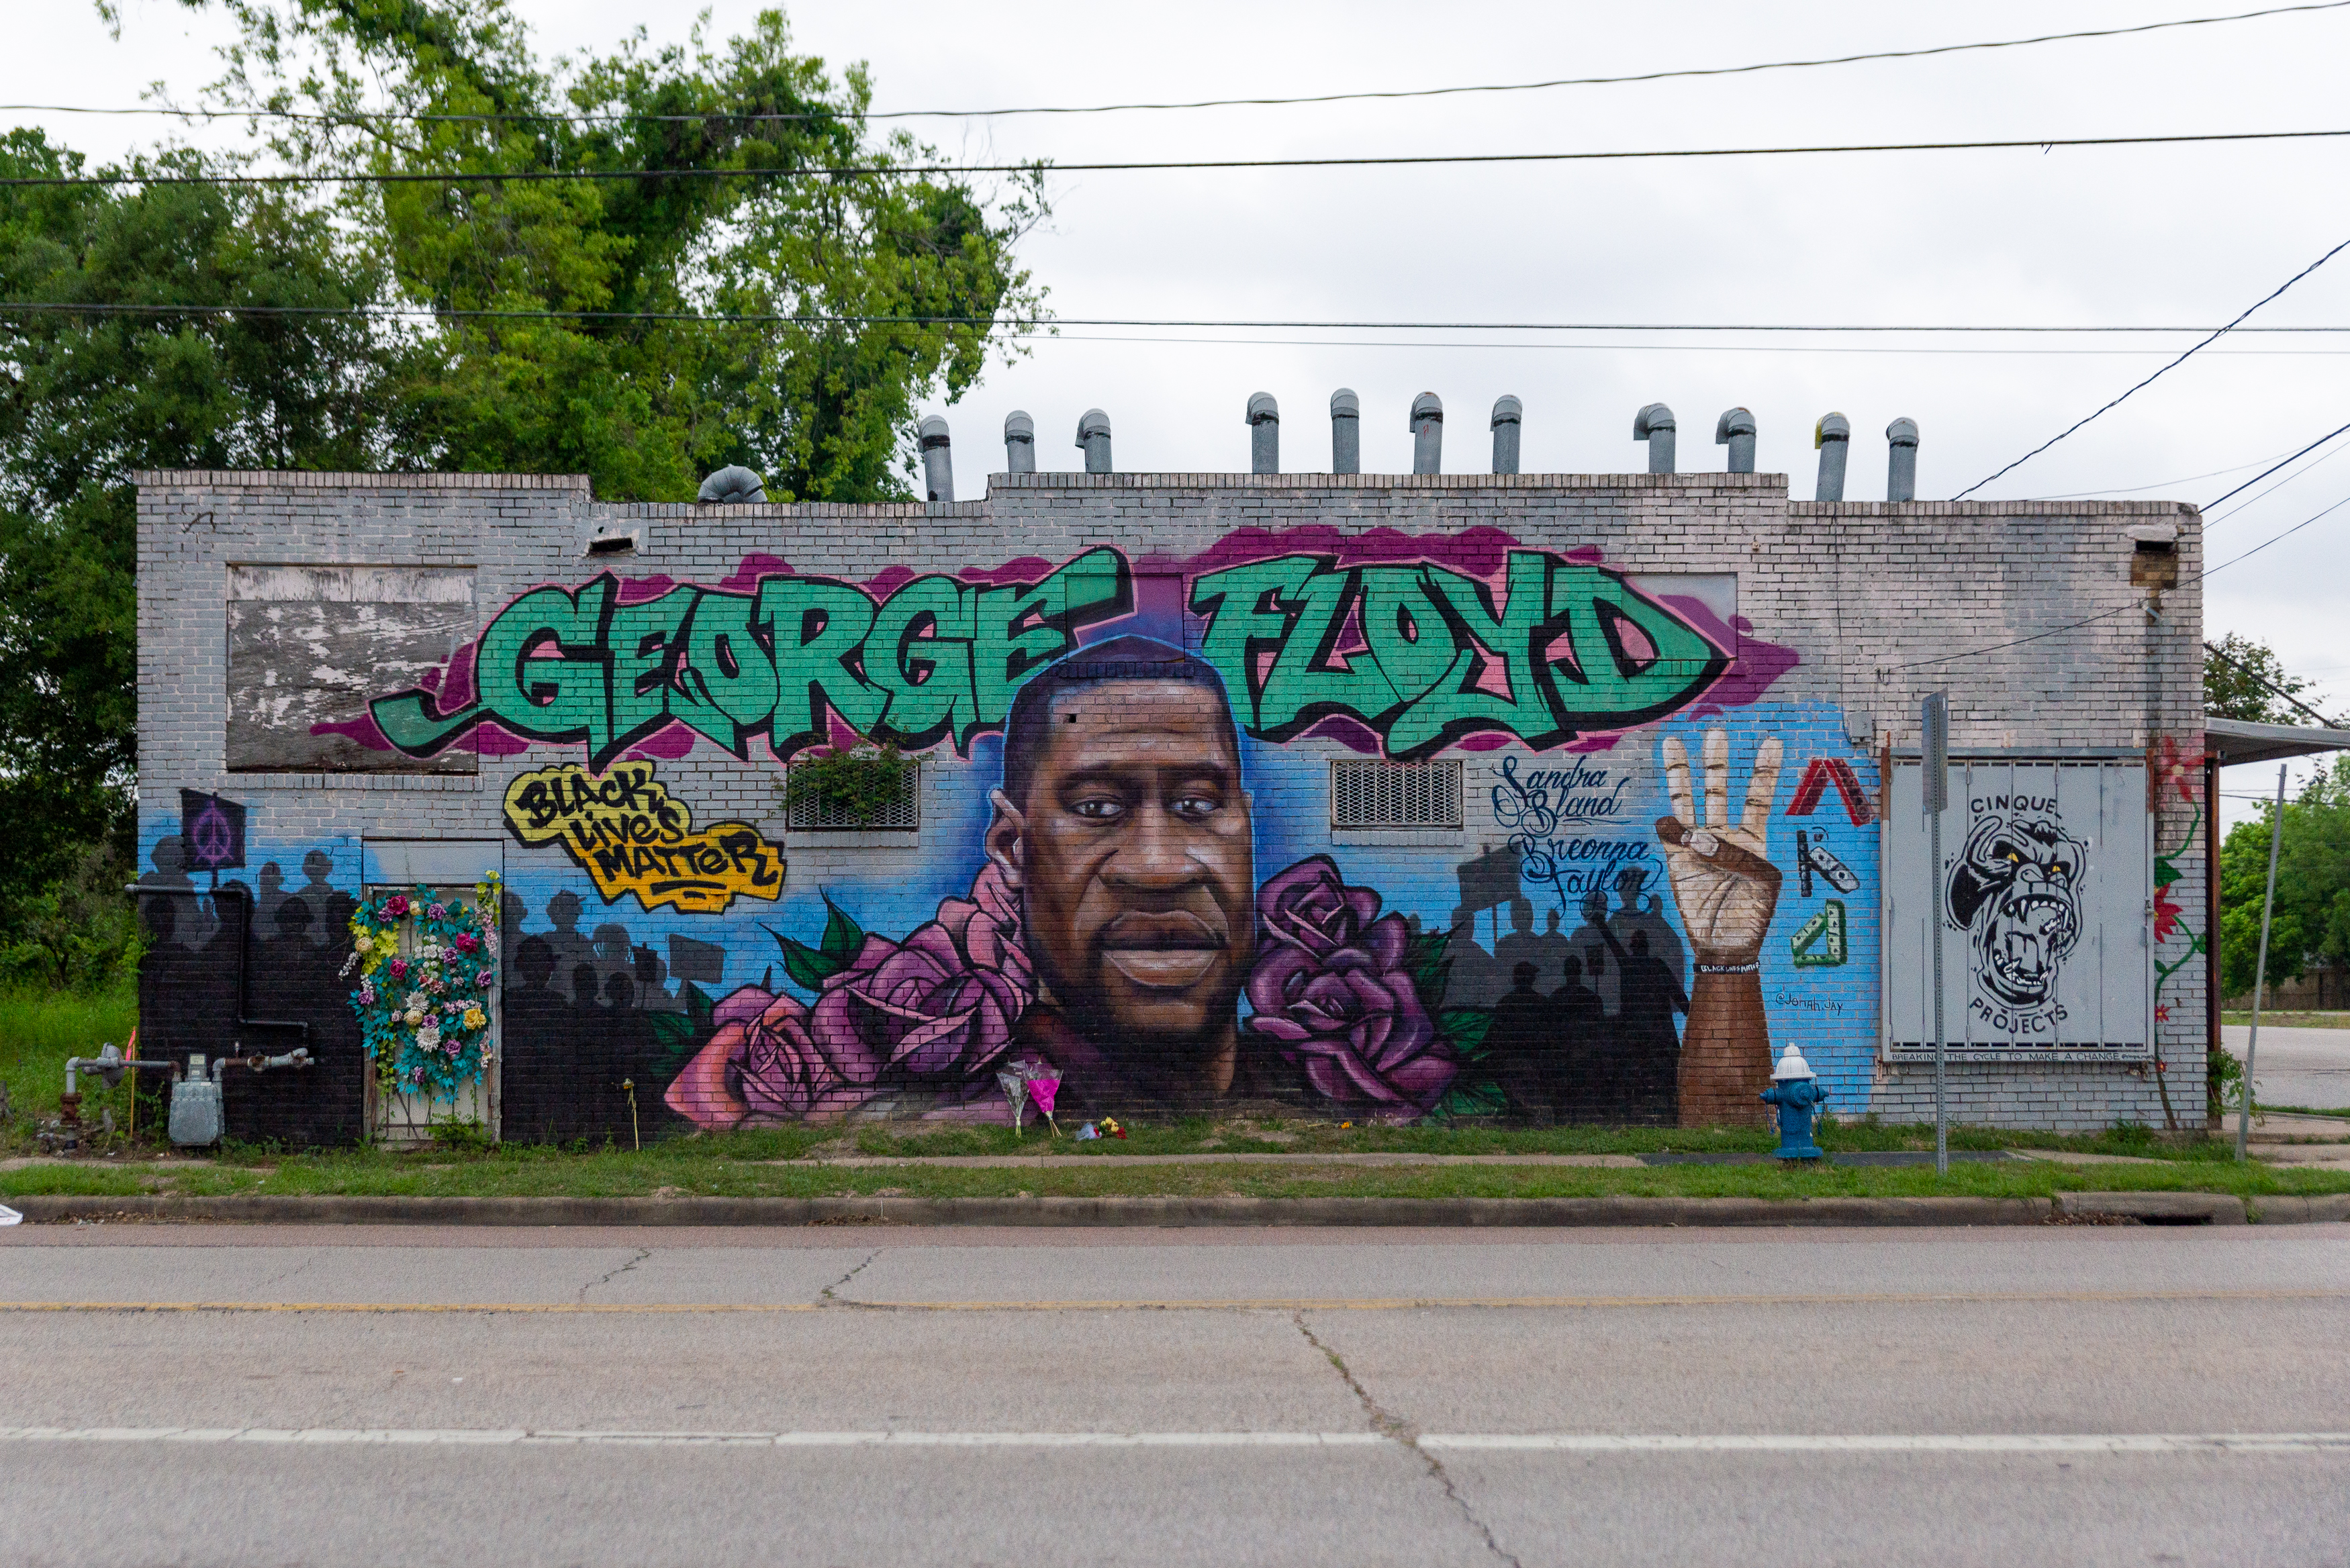 A mural of George Floyd in his hometown of Third Ward, Houston, TX on April 22, 2021. Derek Chauvin was found guilty on all three counts for Floyd's death in Minneapolis on May 25, 2020. (Photo by Jennifer Lake/SIPA USA)No Use Germany.